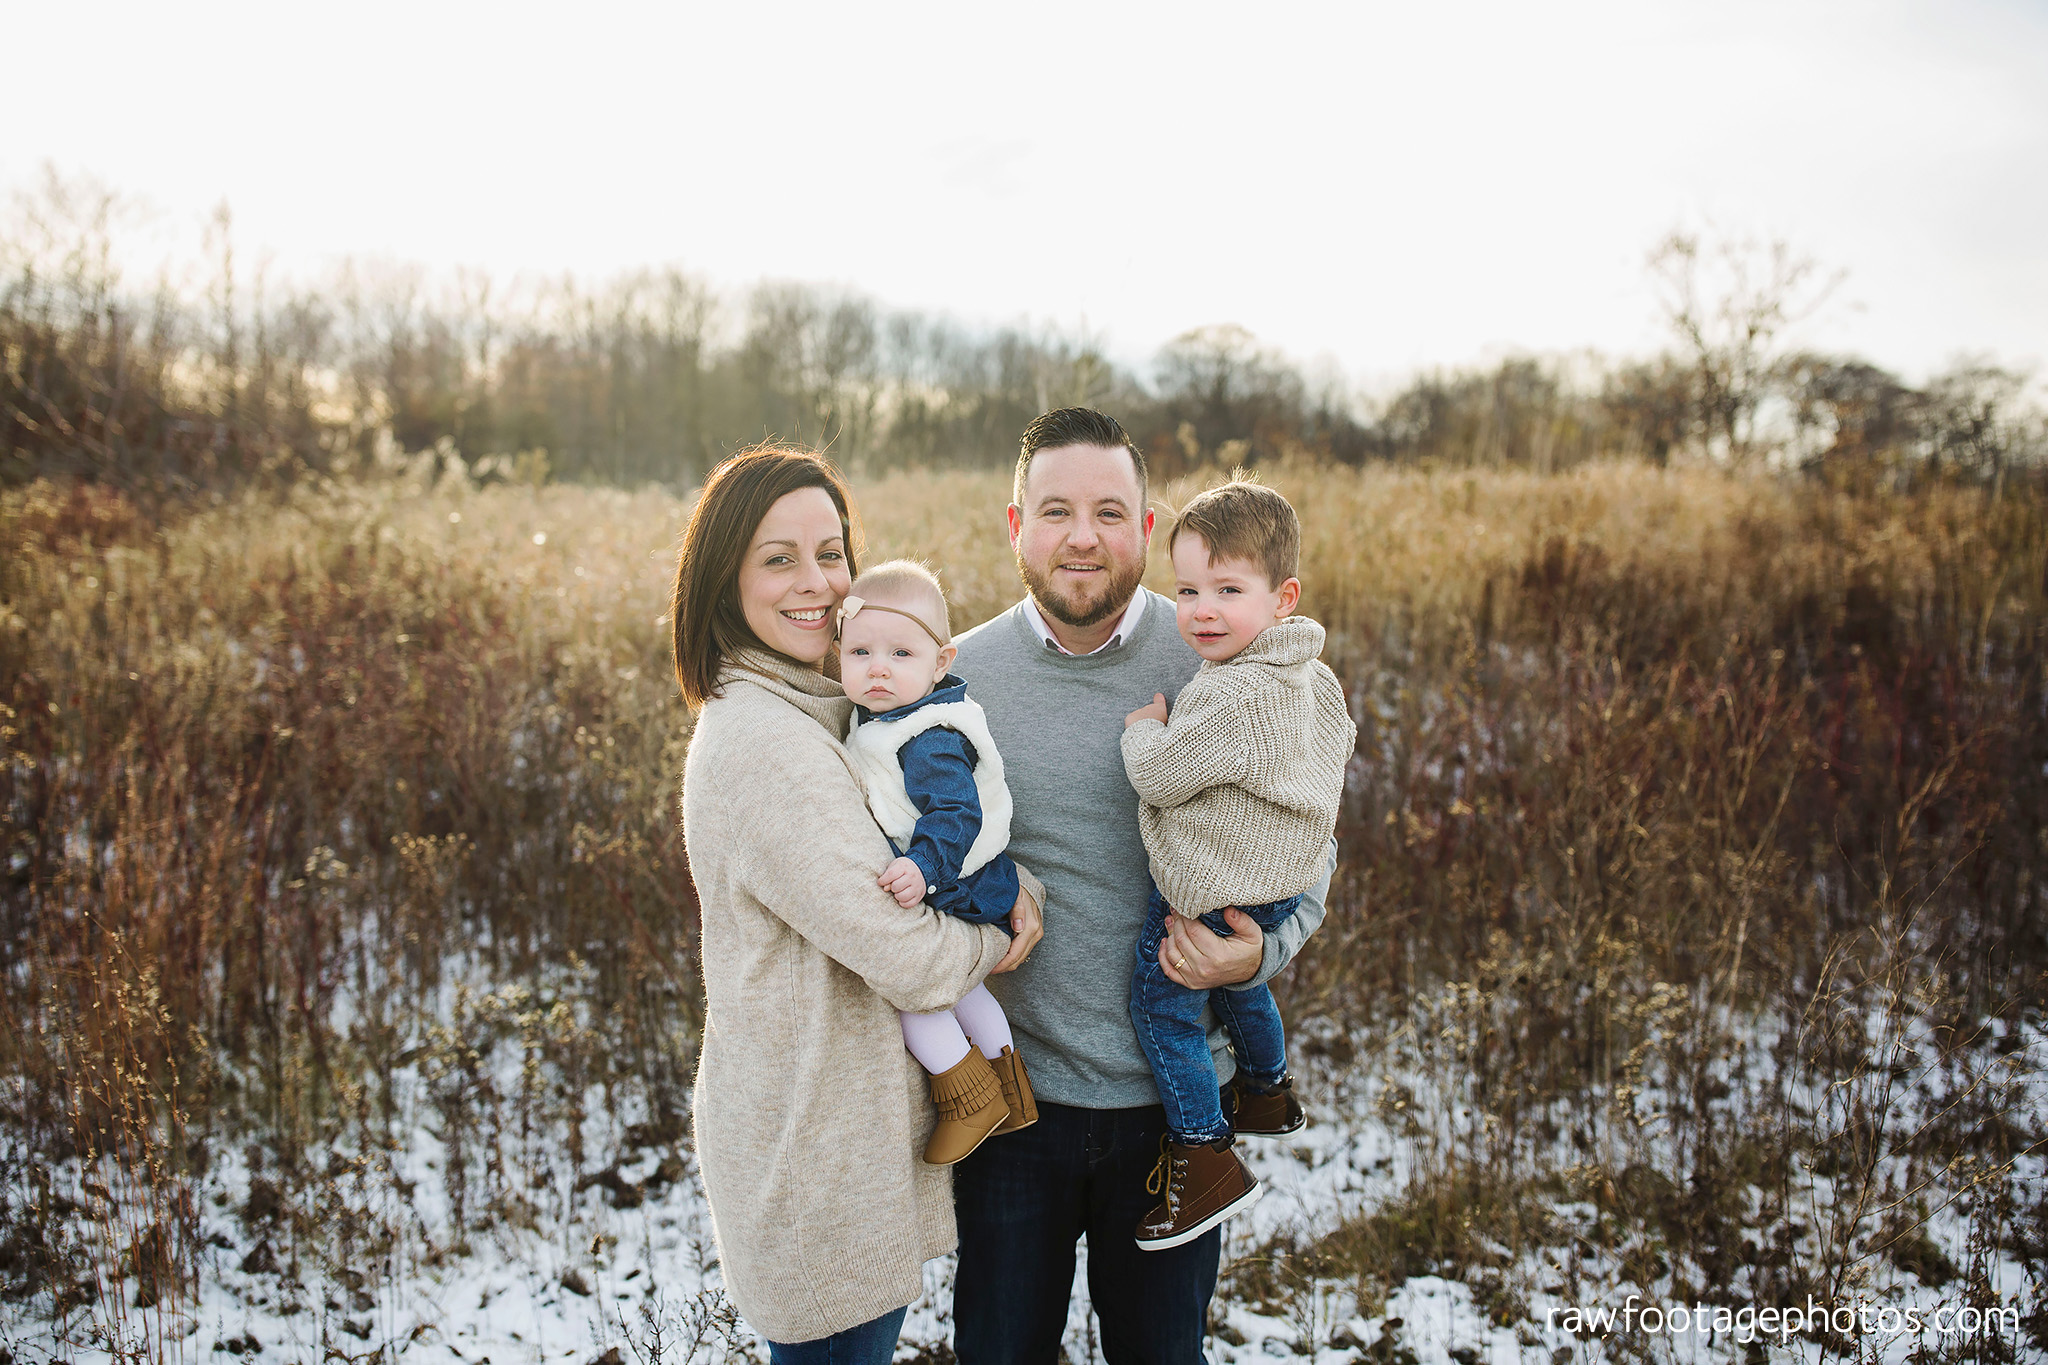 london_ontario_family_photographer-greenhouse_photos-winter_field_photos-raw_footage_photography001.jpg